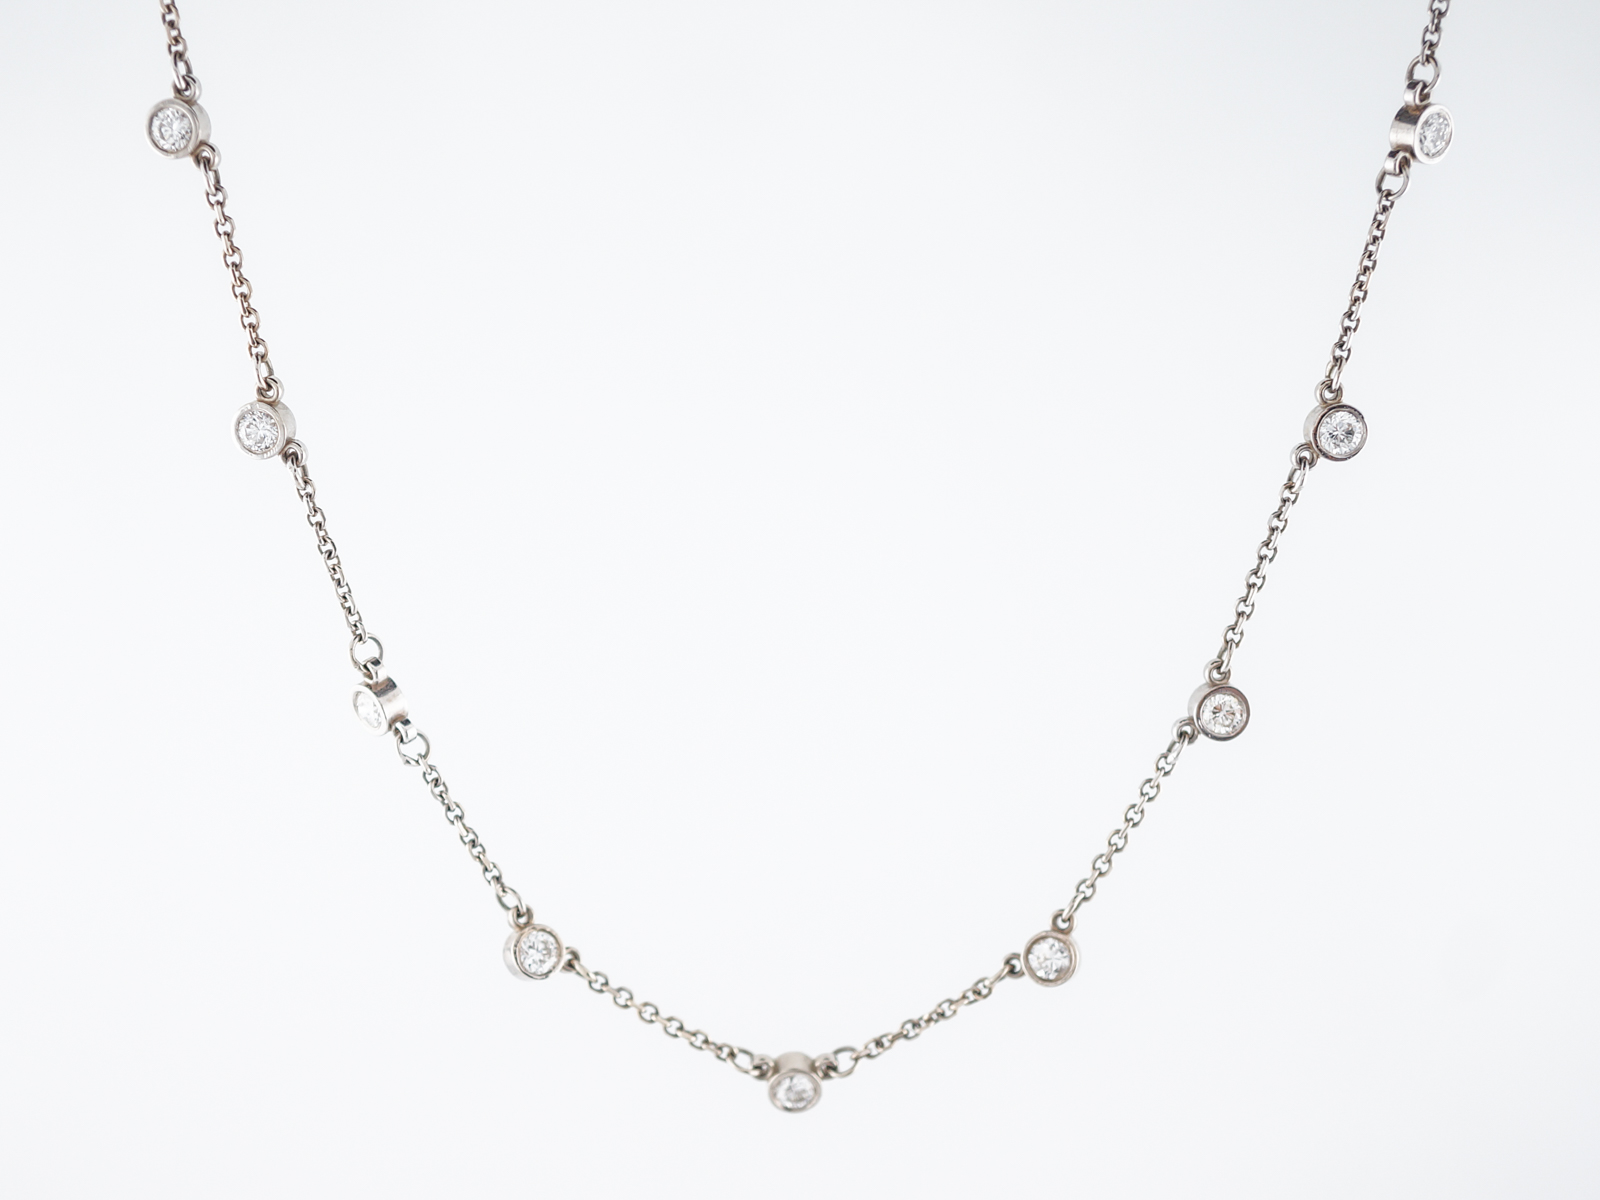 Modern Necklace 1.90 Round Brilliant Cut Diamonds in 14k White Gold-1